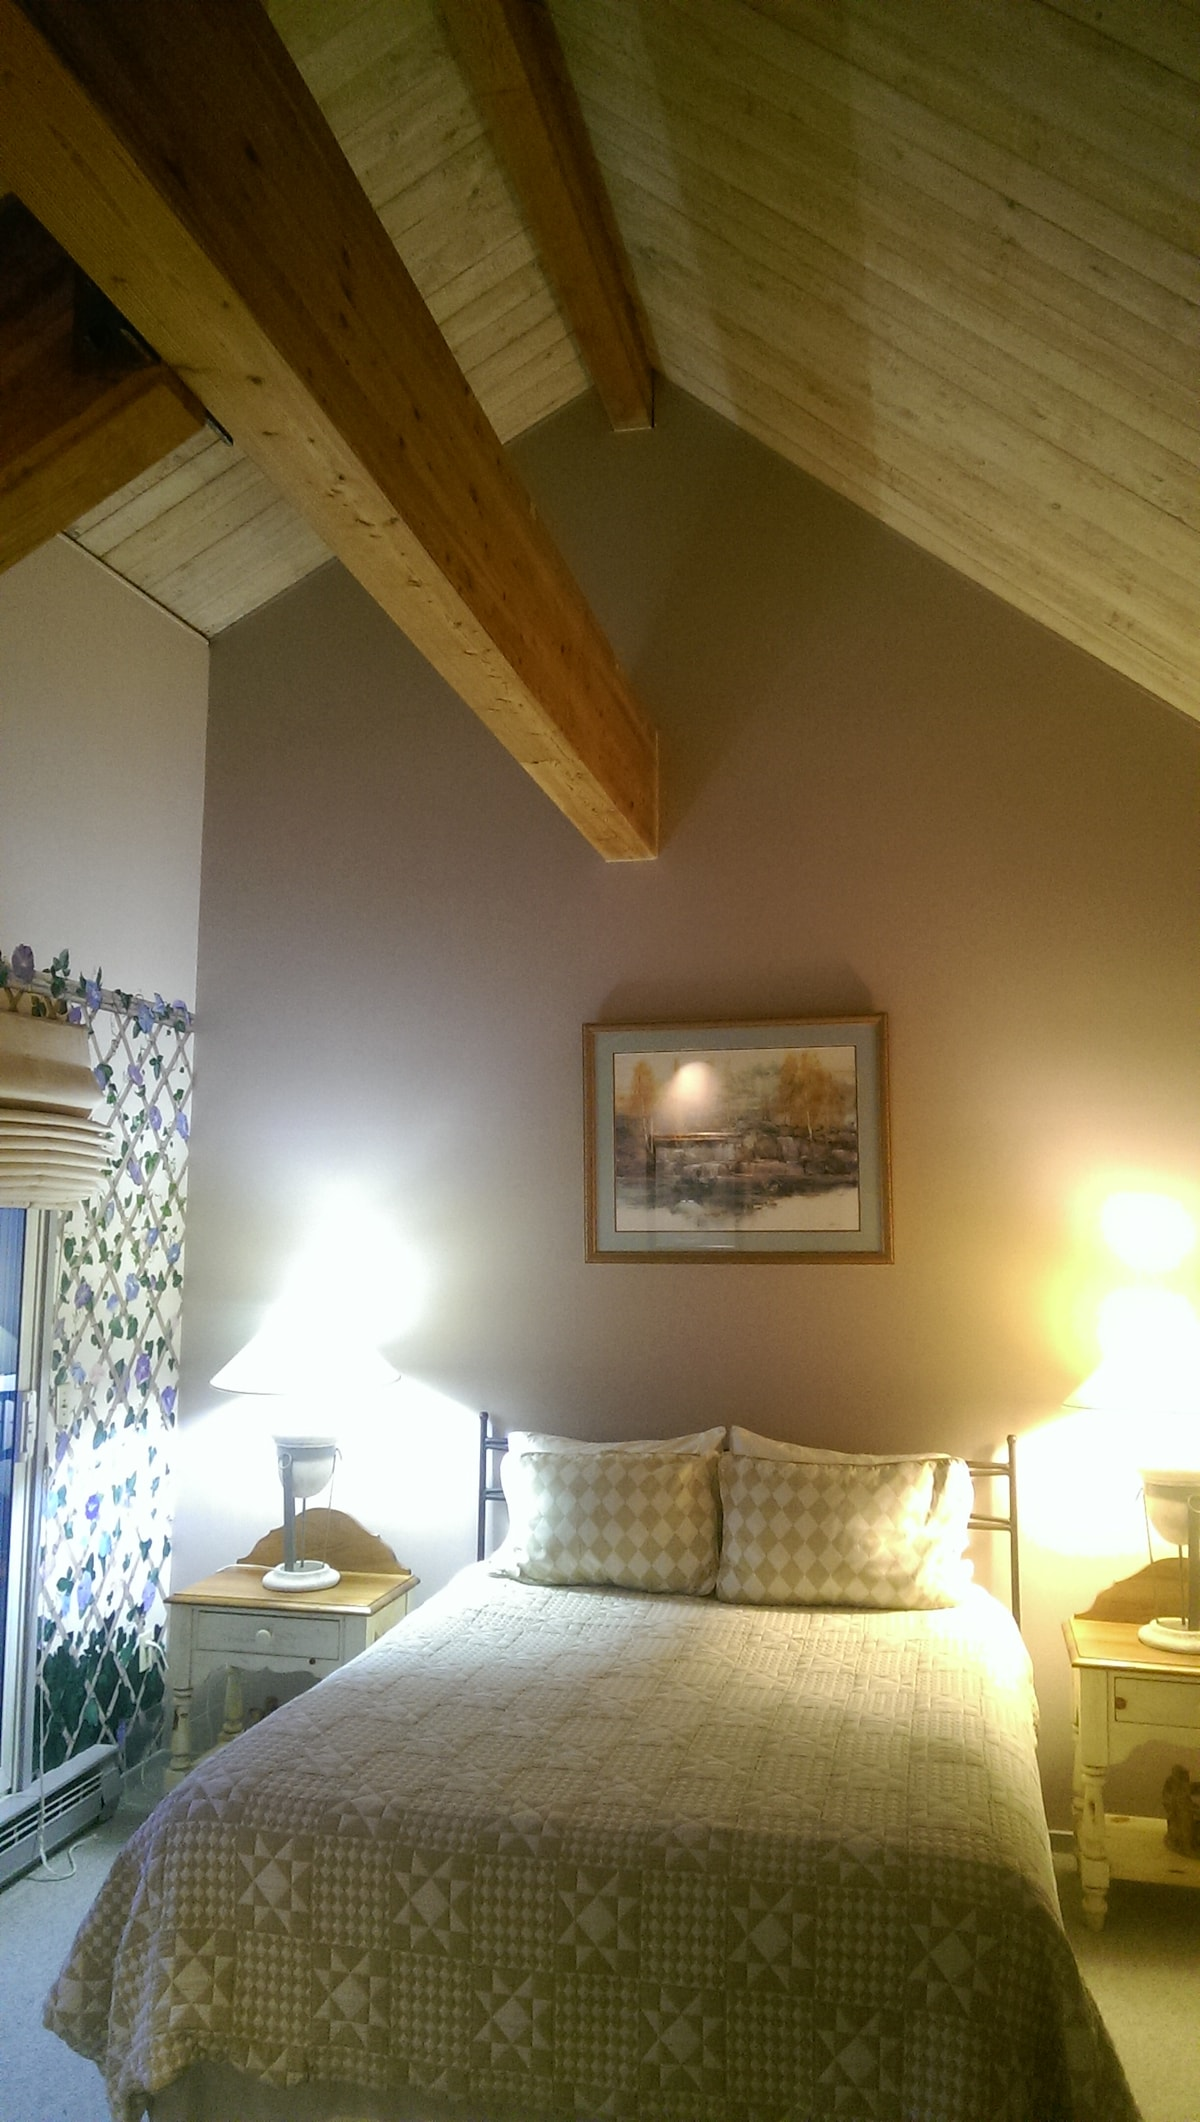 Click through to see fuller view of exposed beams and cathedral ceiling in master BR